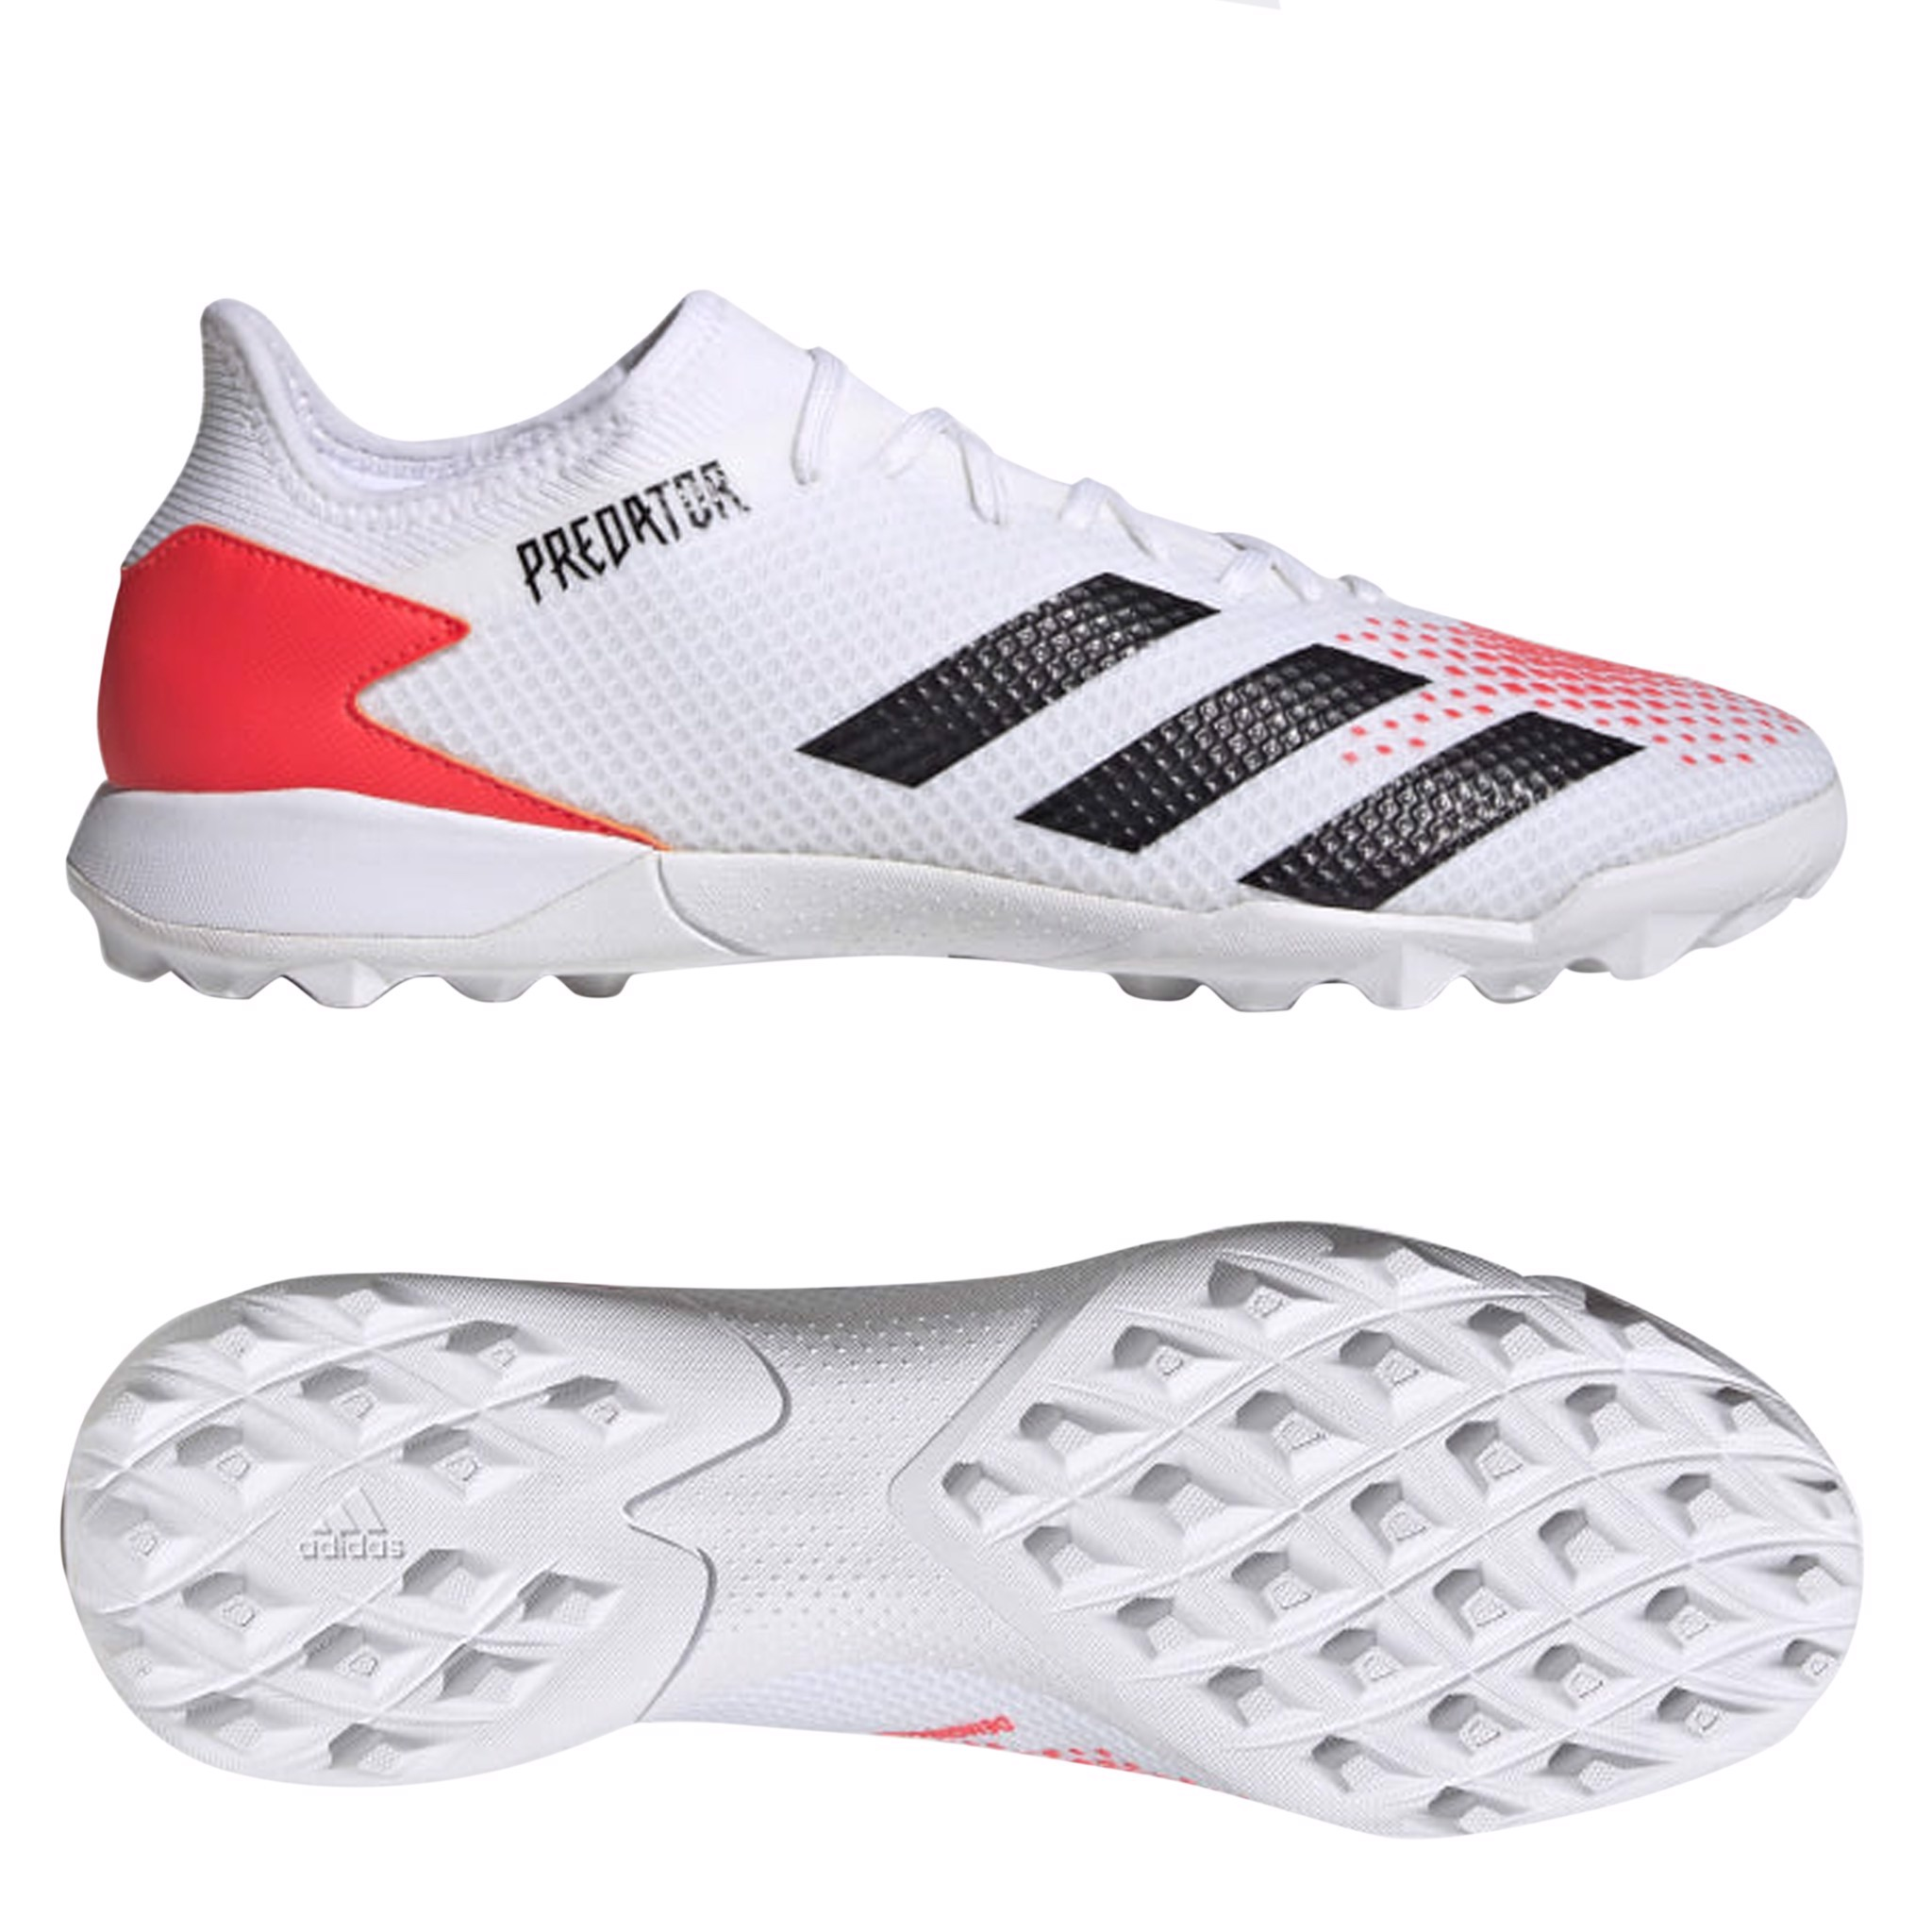 adidas Predator 20.3 Low TF Uniforia - Footwear White/Core Black/Pop